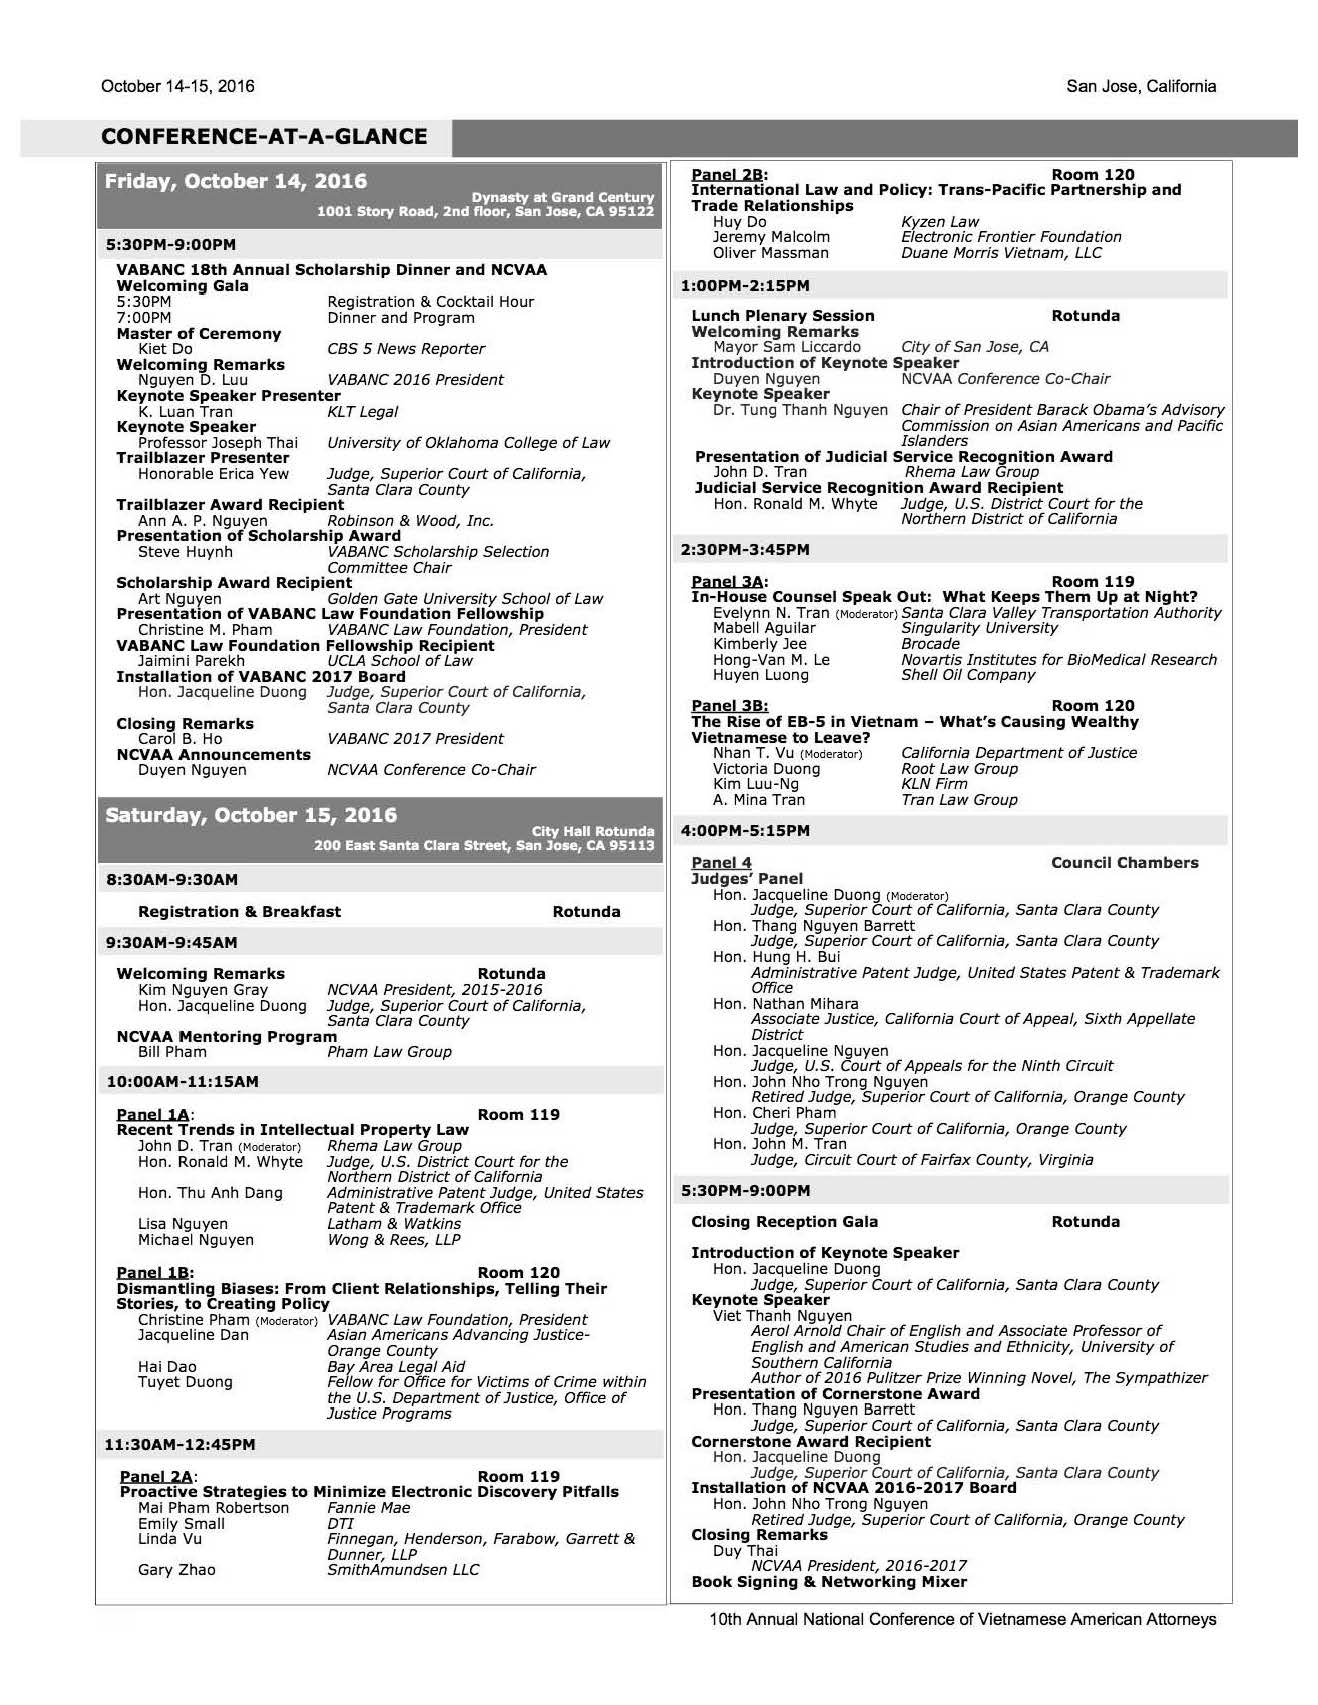 2016_Conference-At-A-Glance